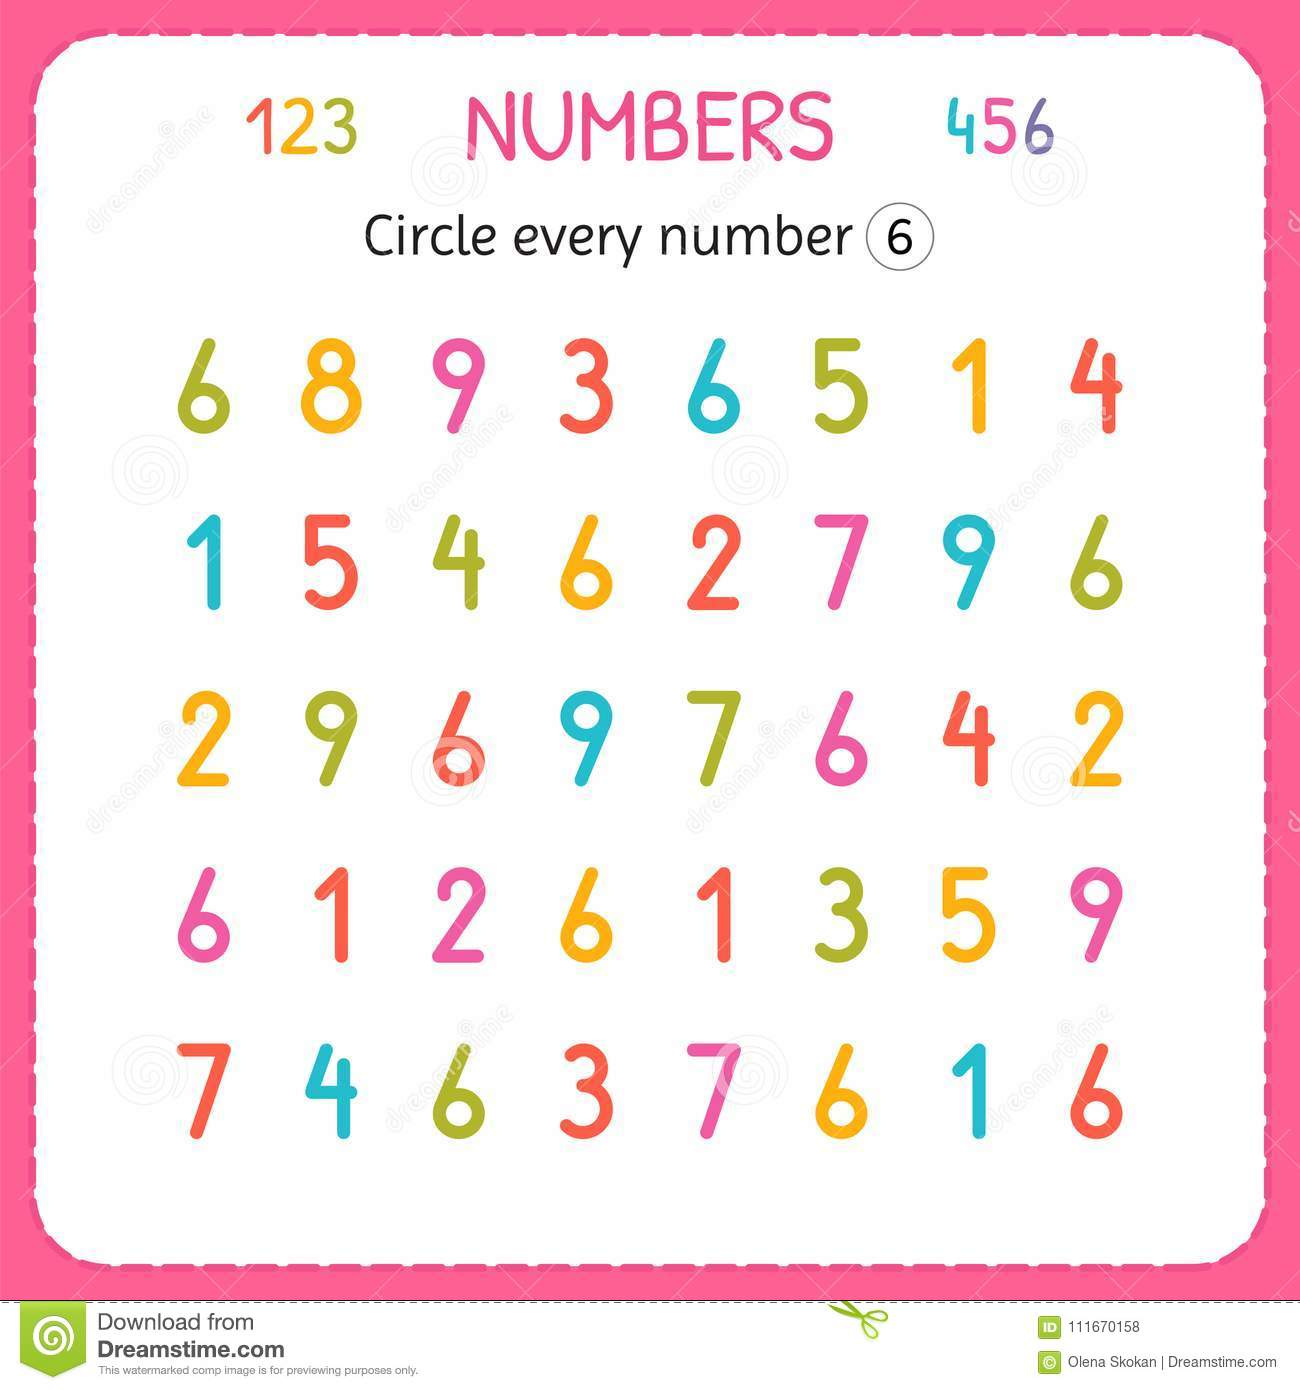 Circle Every Number Six Numbers For Kids Worksheet For Kindergarten And Preschool Training To